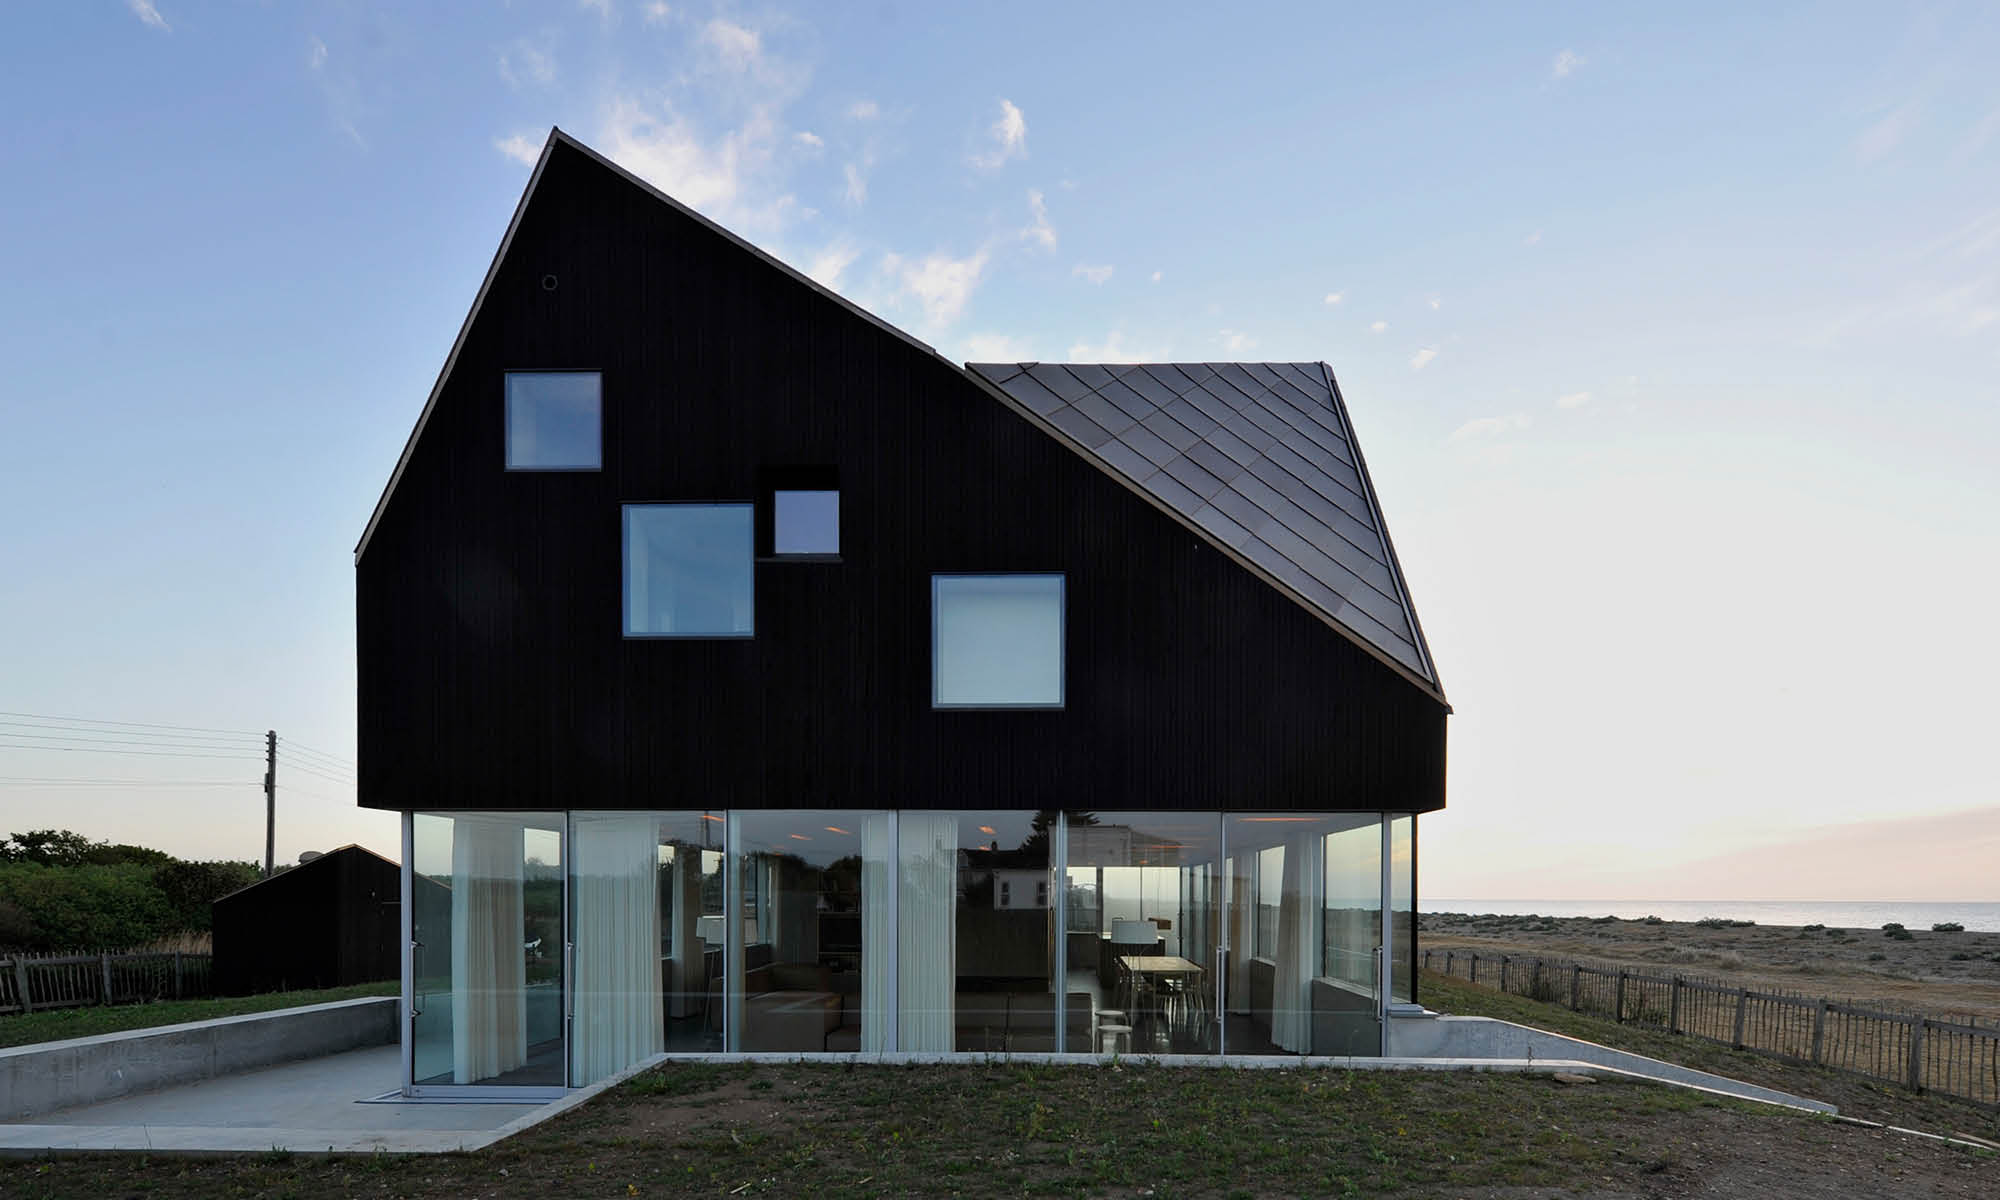 A stunning house with black façade